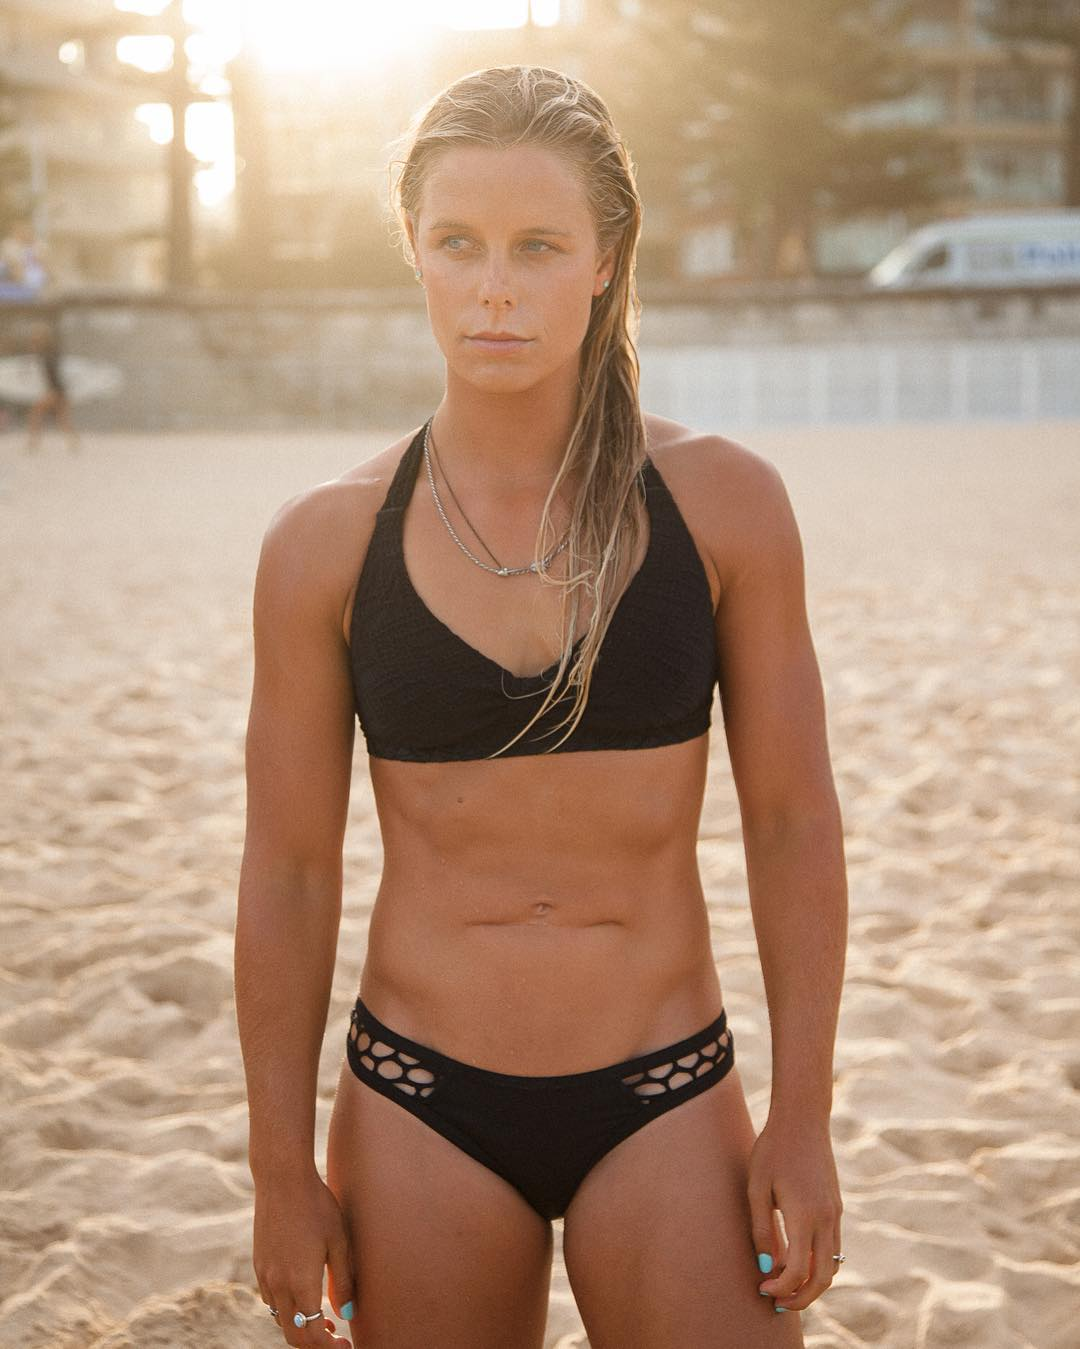 World Leading Professional Surfer Paige Hareb on her